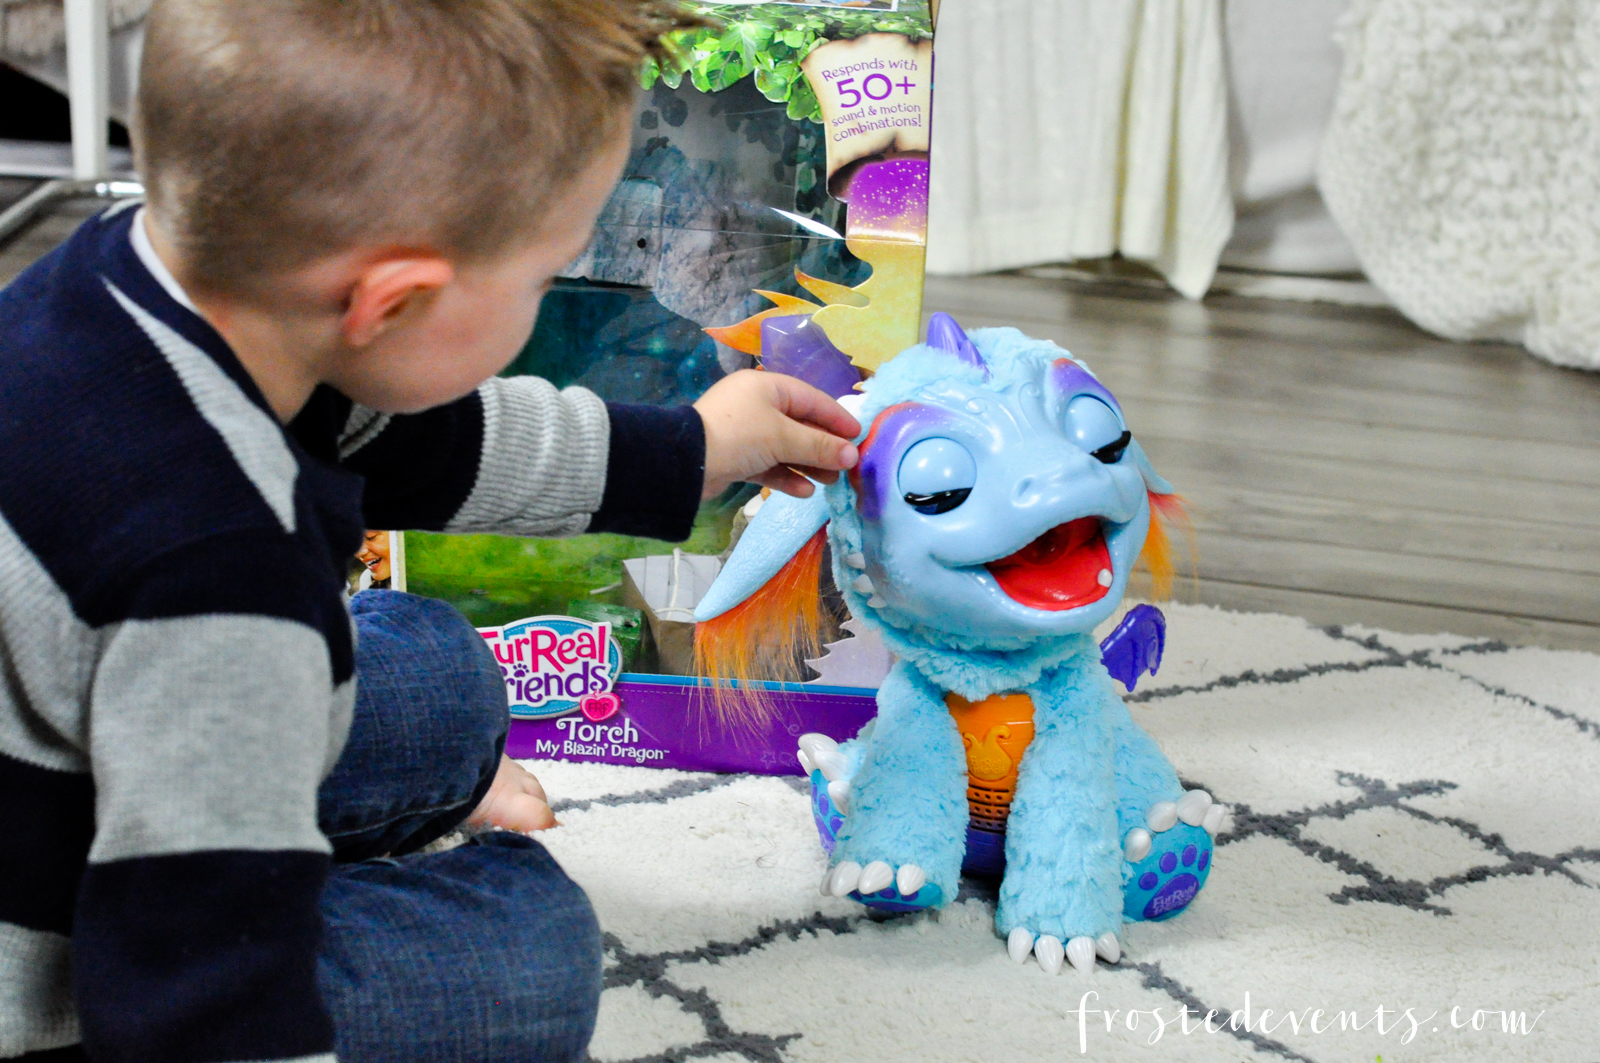 Hottest Christmas Toys : Hot christmas toys furreal friends from hasbro torch